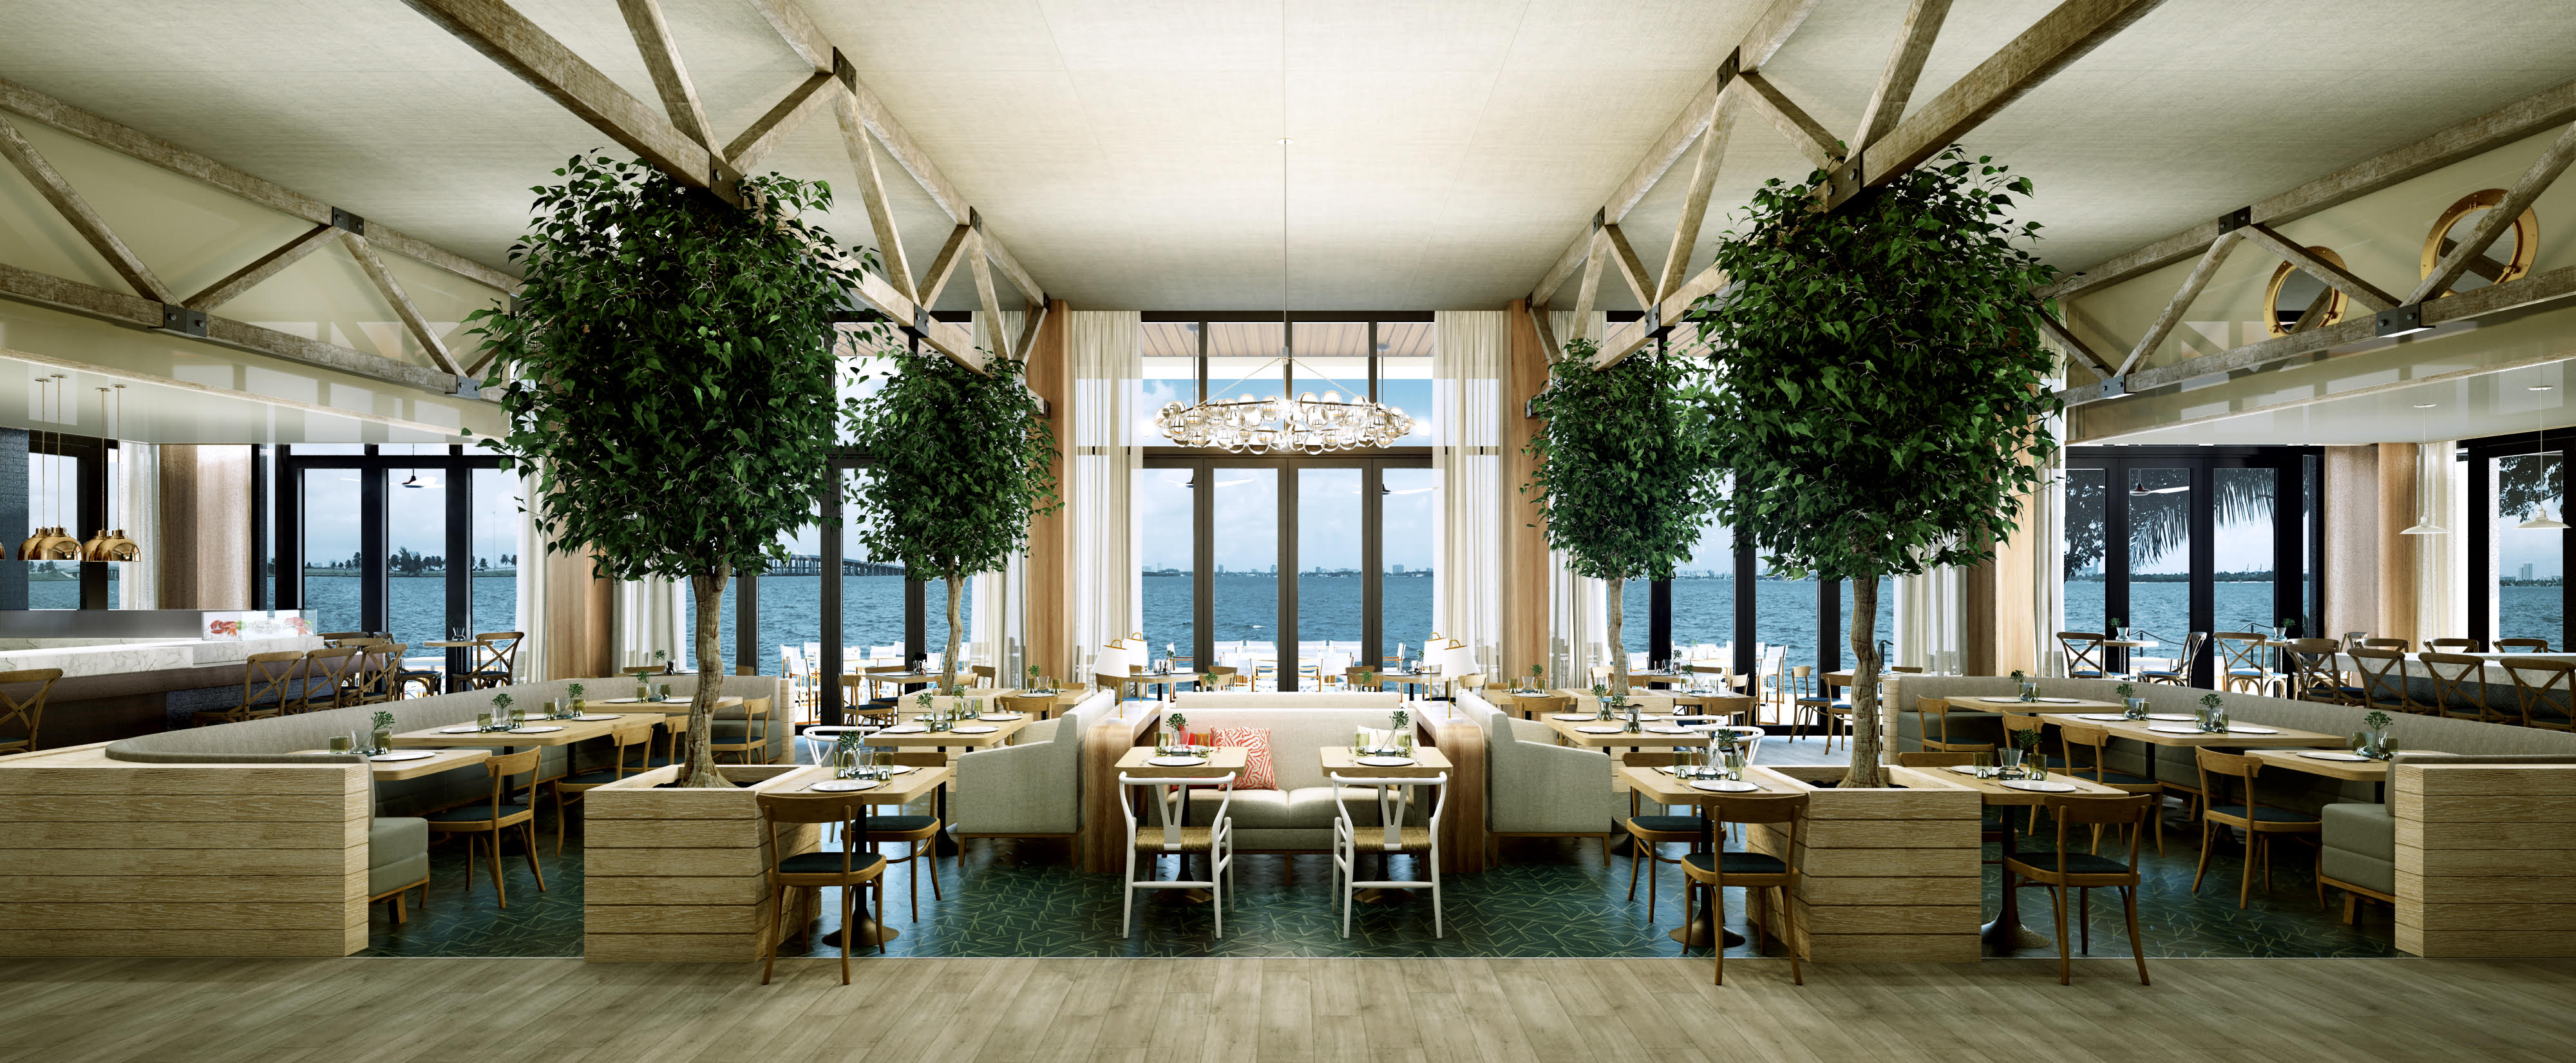 Amara at paraiso quintessential miami restaurant with Amara homes